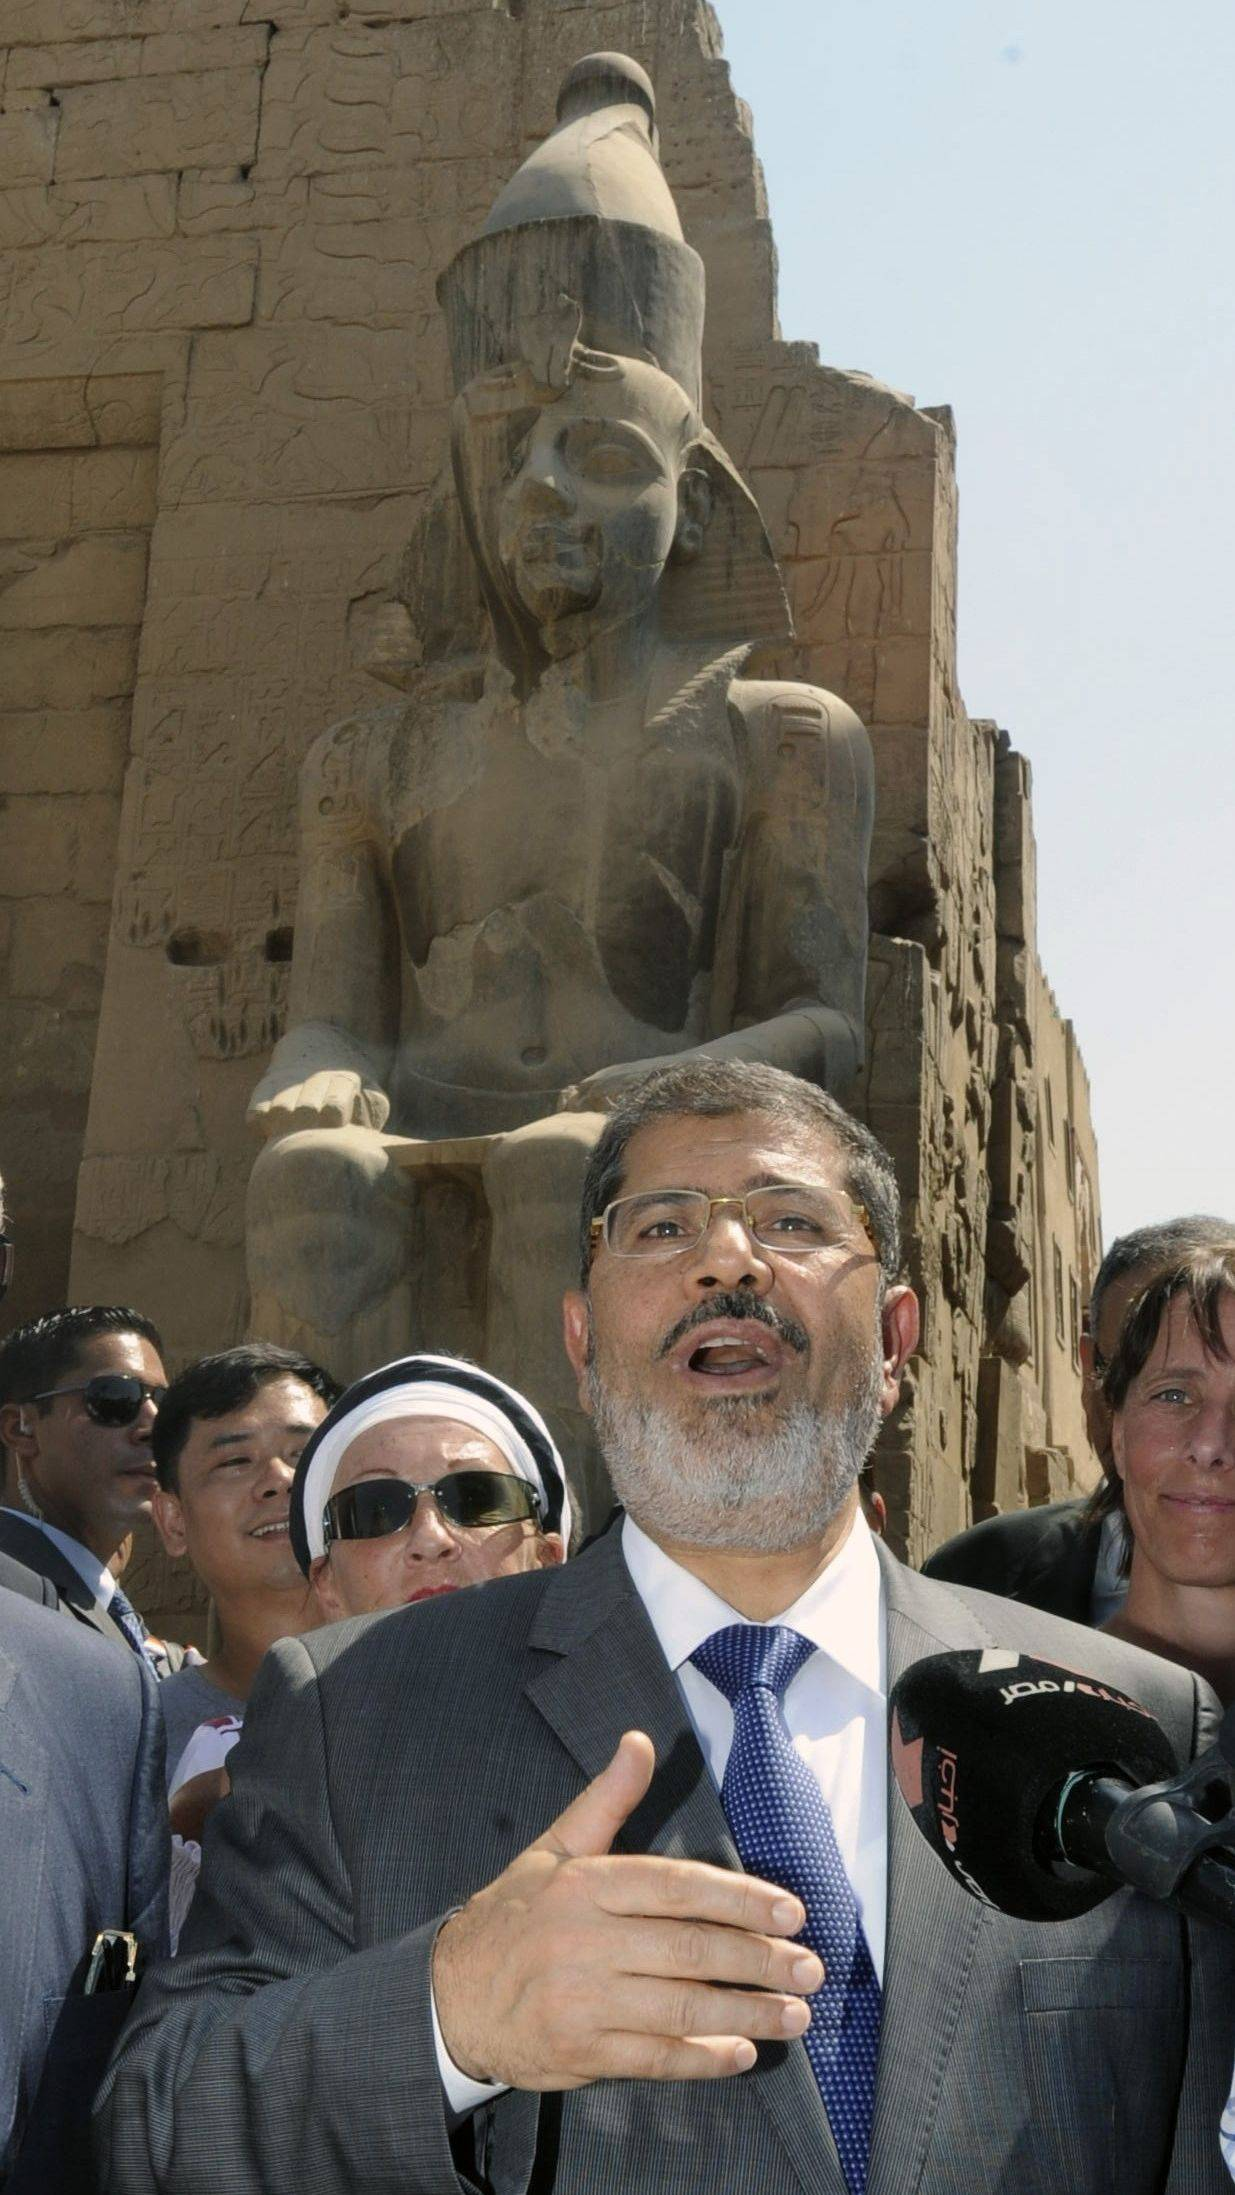 Egyptian President Mohammed Morsi, surrounded by tourists Friday, visits the Luxor temple in Luxor, Egypt. Morsi pledged to support tourism during a visit to the ancient Pharaonic temples of Luxor, a move aimed to assuage fears that the rise of an Islamist leader would undermine the country�s allure.